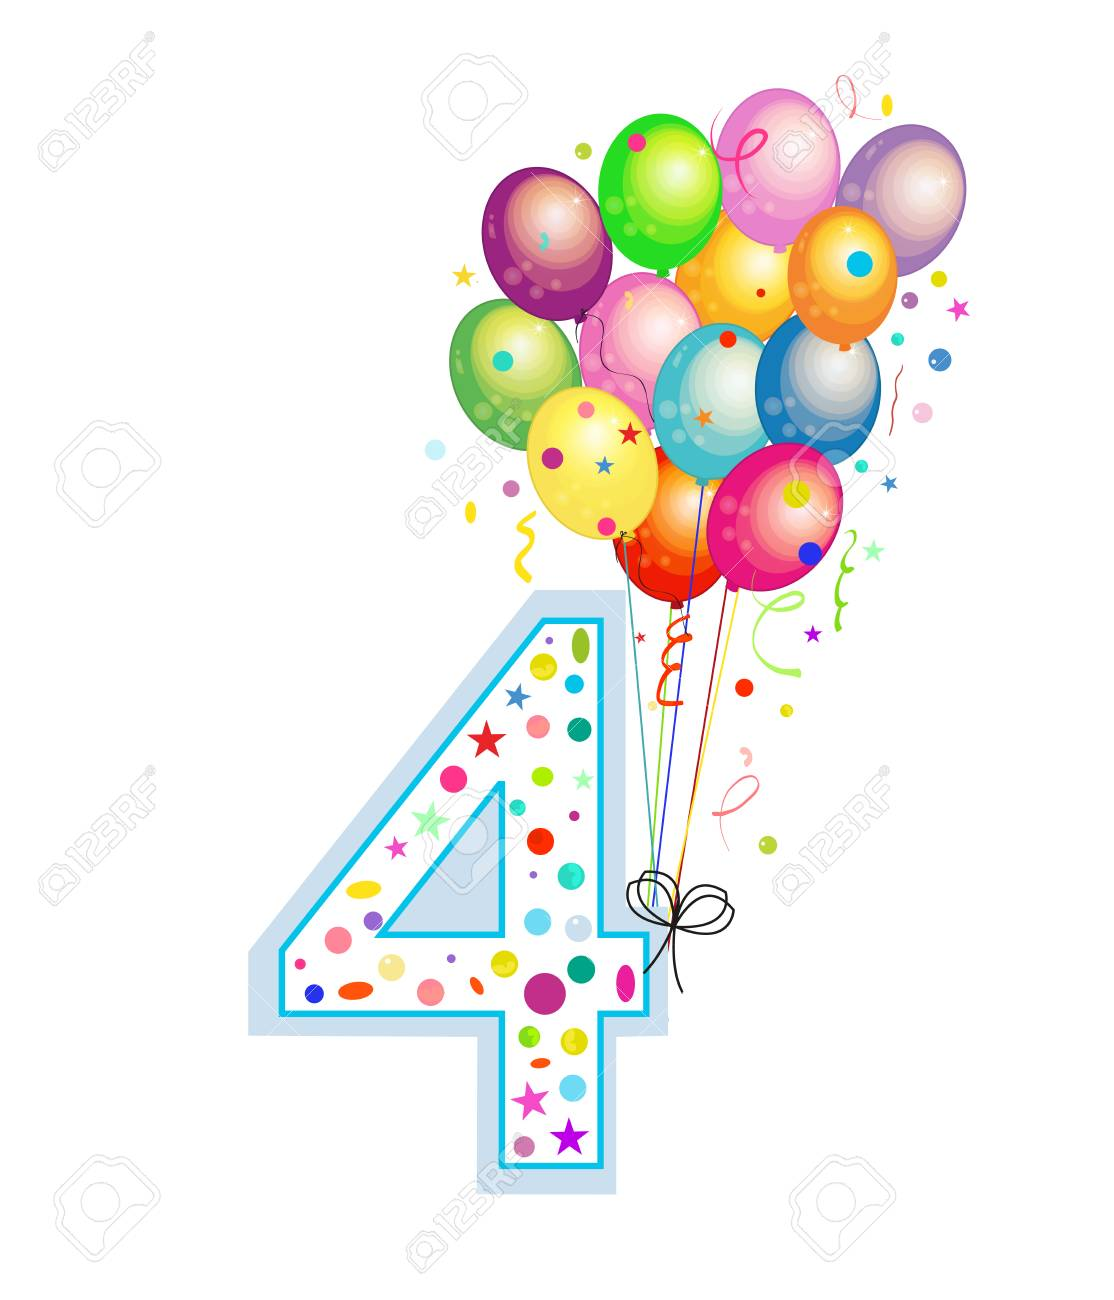 Happy Fourth Birthday Candle Four Numbered Balloon Colorful Balloons Greeting Card Background Stock